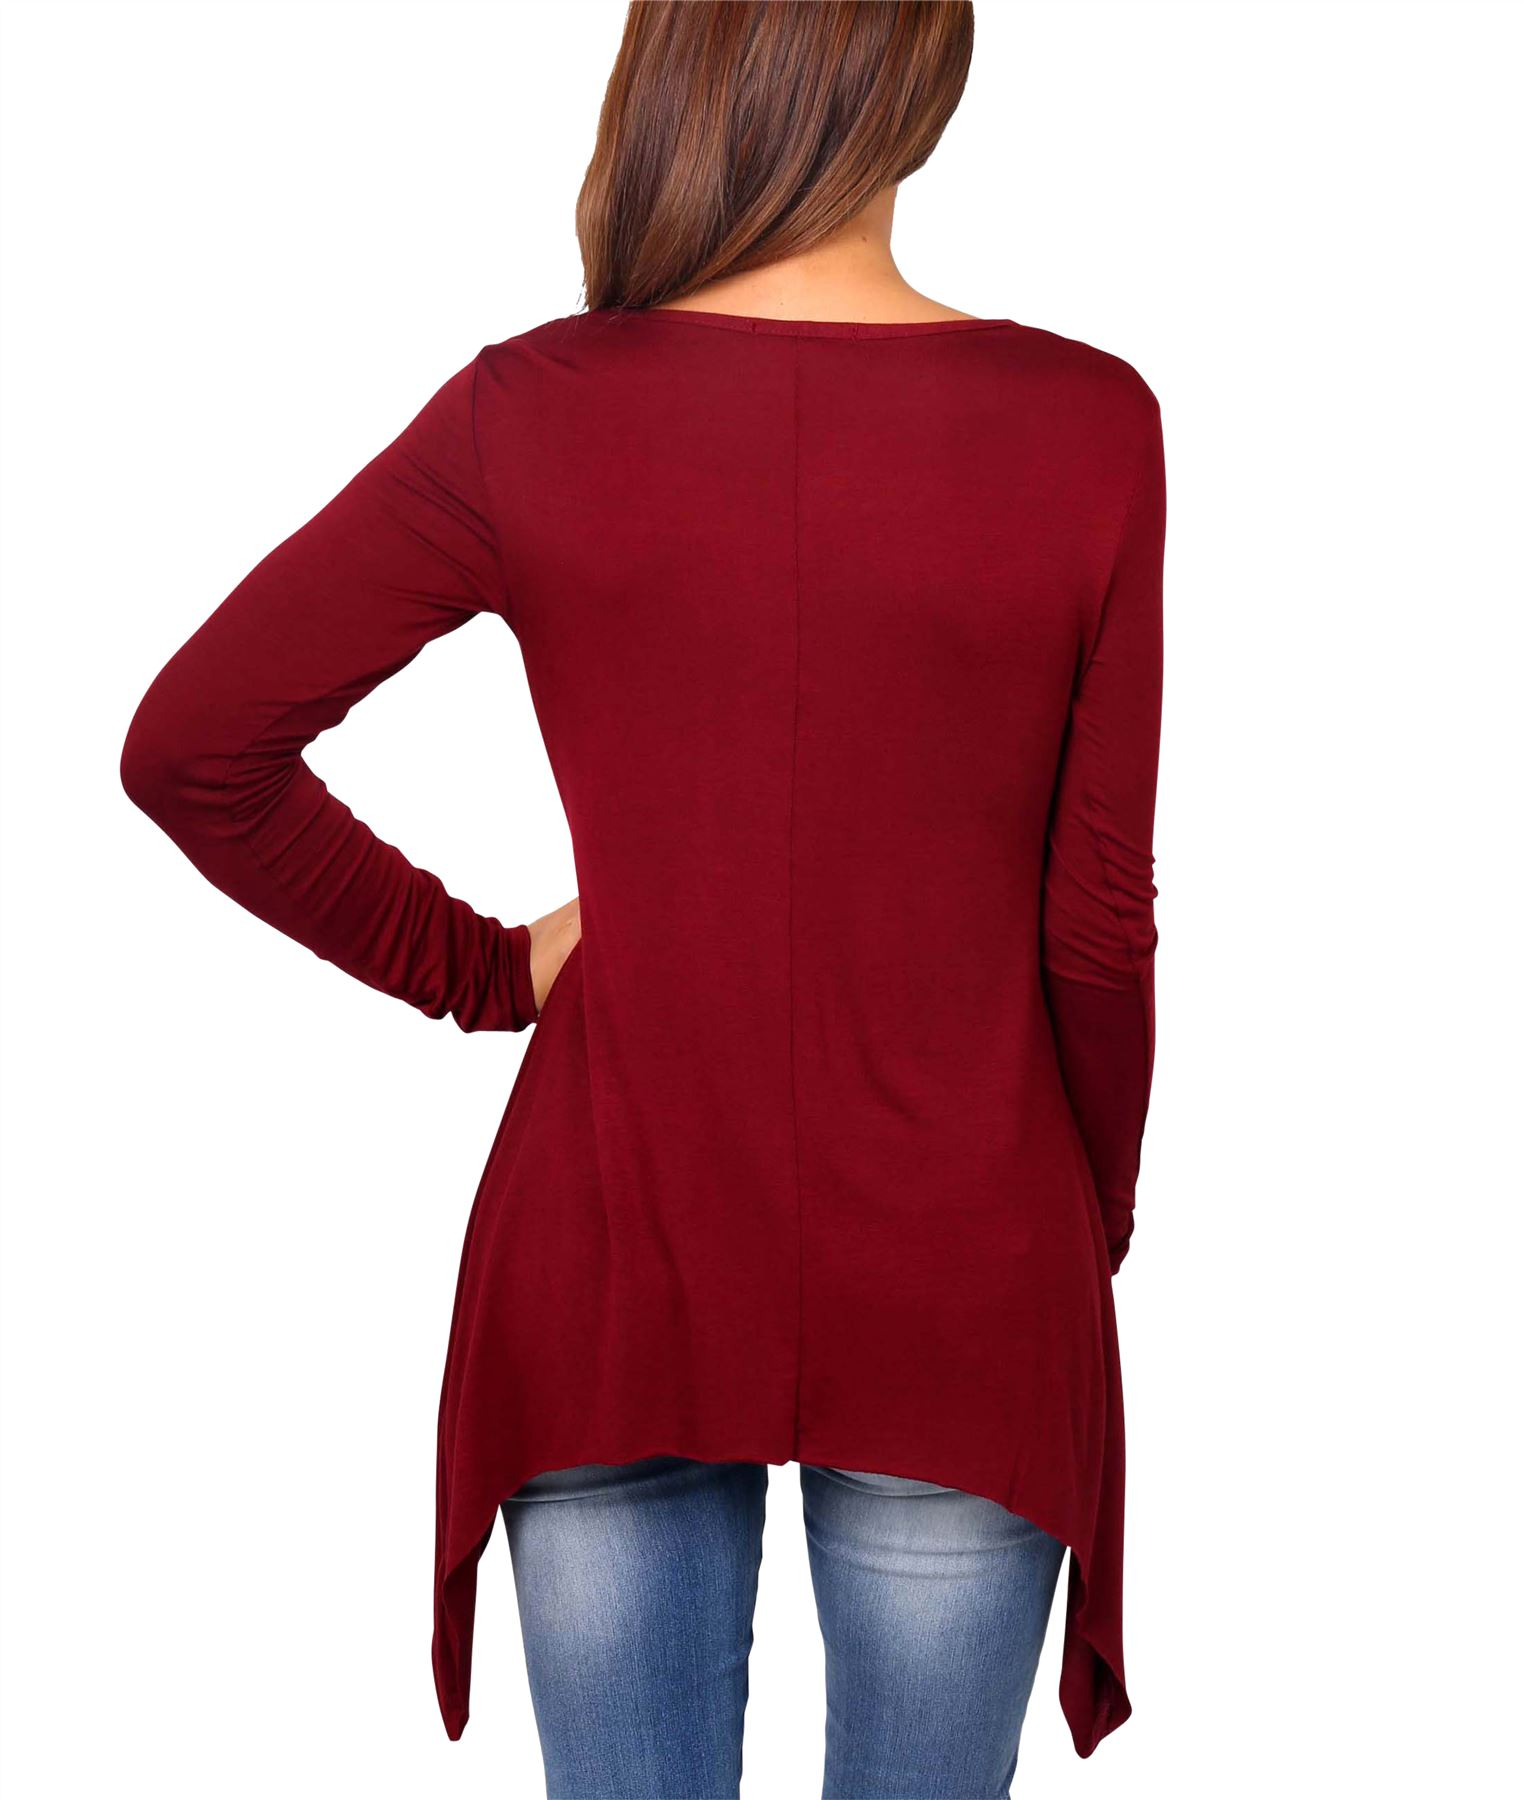 Womens-Ladies-Scoop-Neck-Blouse-Longline-T-Shirt-Flared-Top-Pleated-Long-Sleeve thumbnail 9